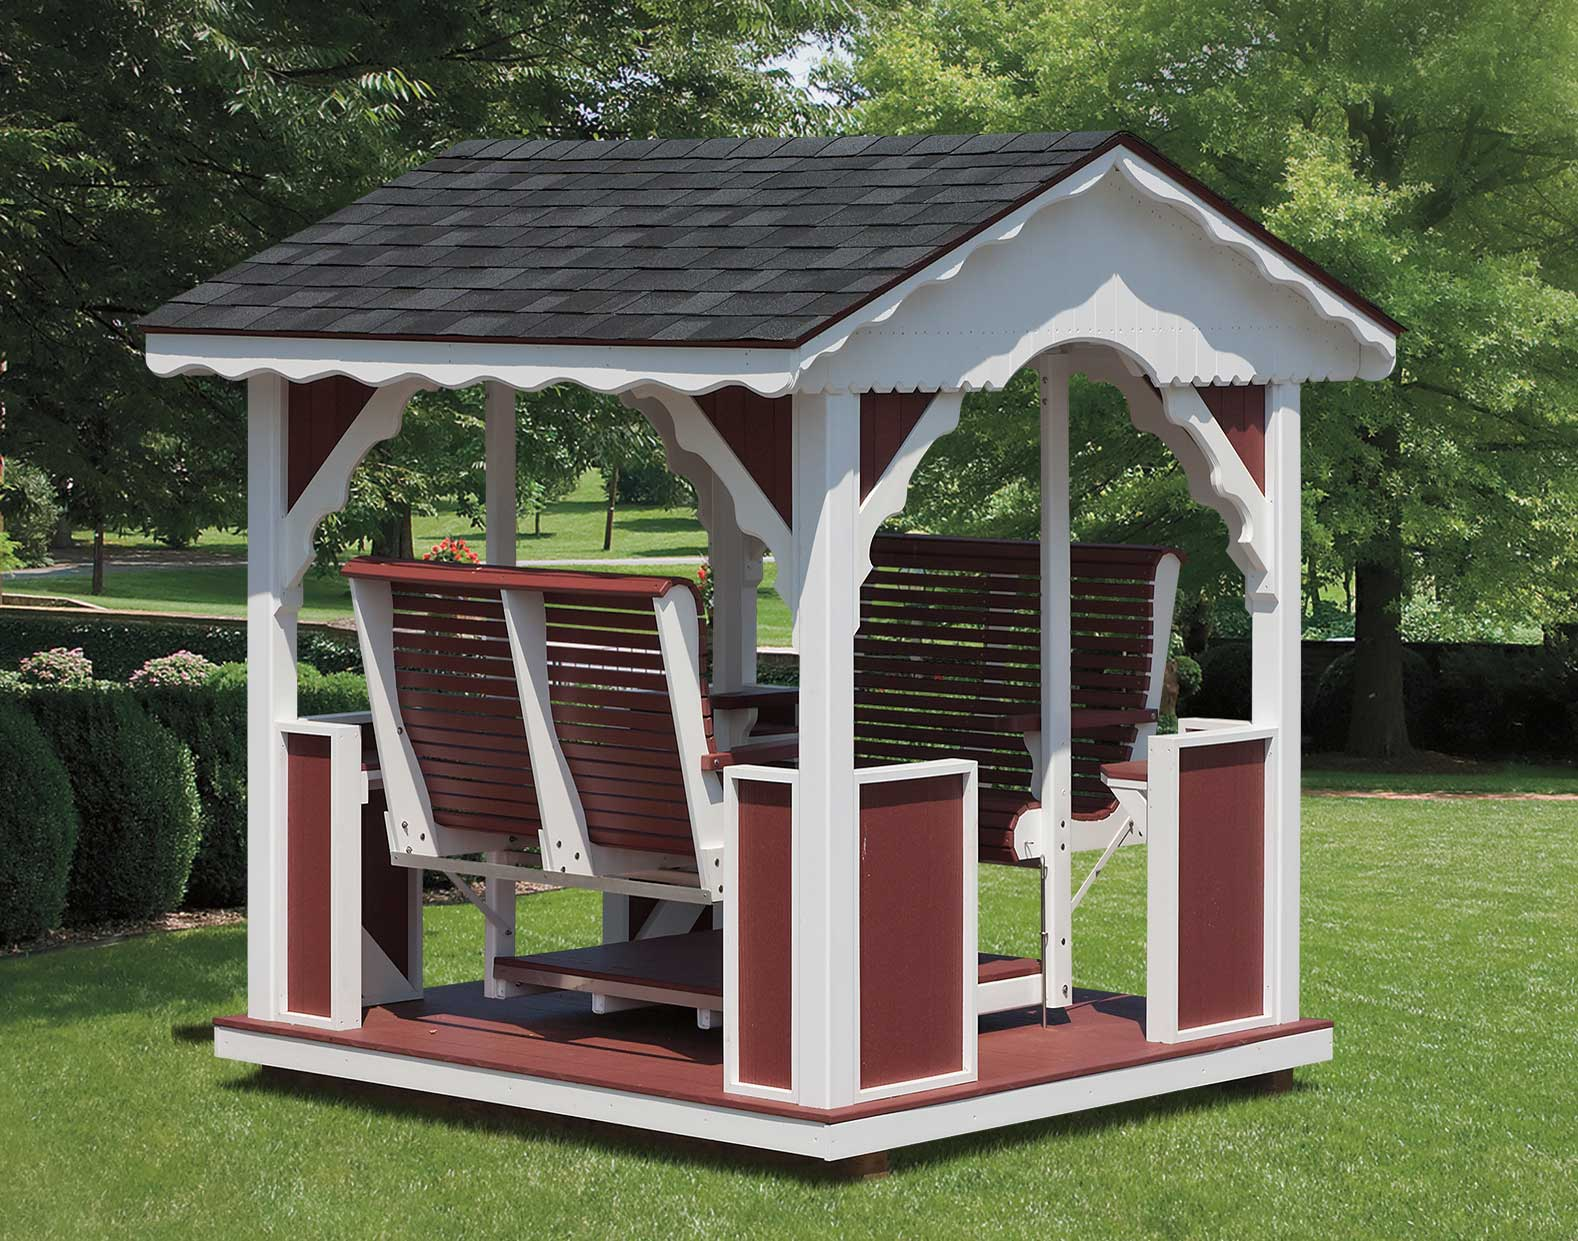 Vinyl Amp Poly Lumber Gable Gazebo Swing